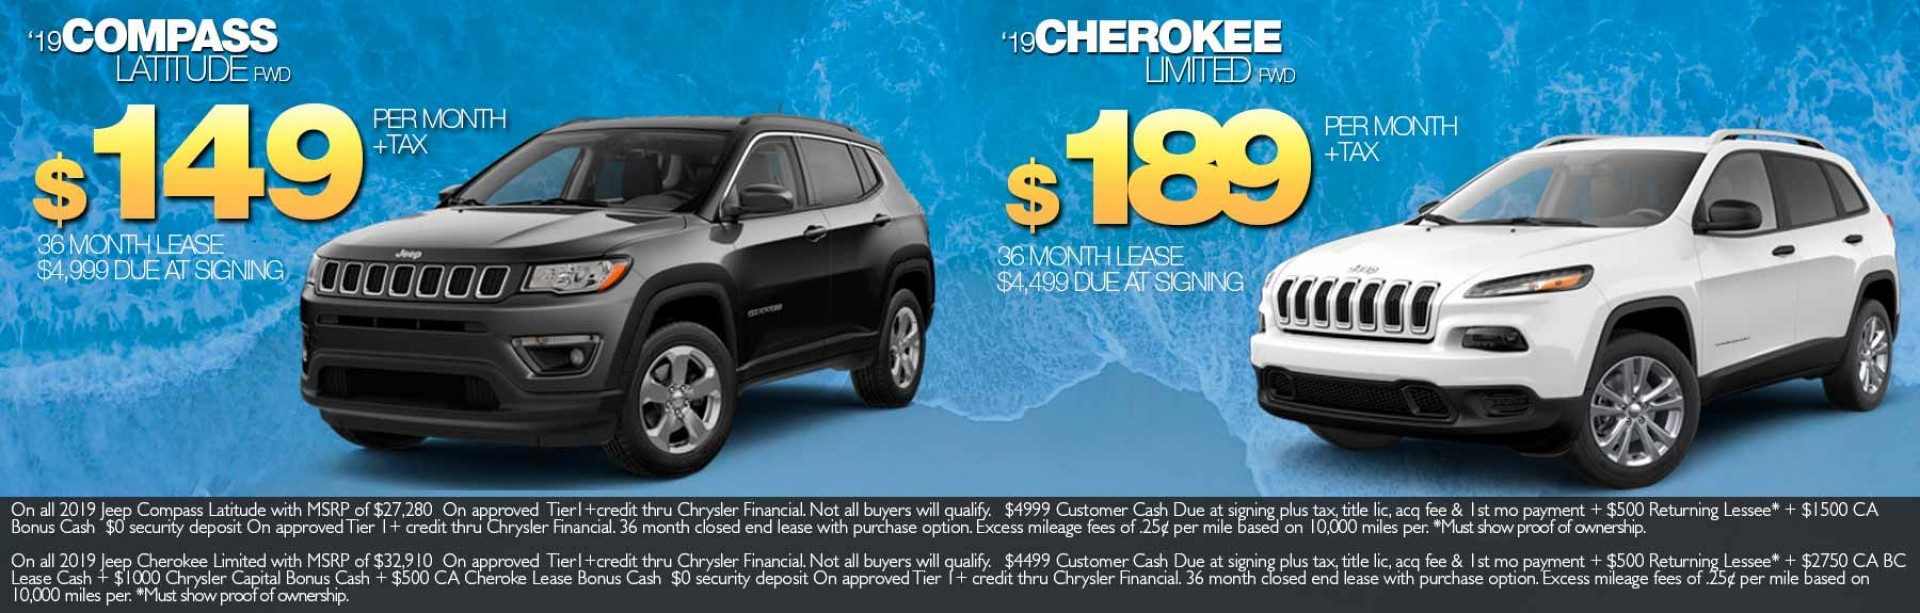 2019 Compass & Cherokee lease offers